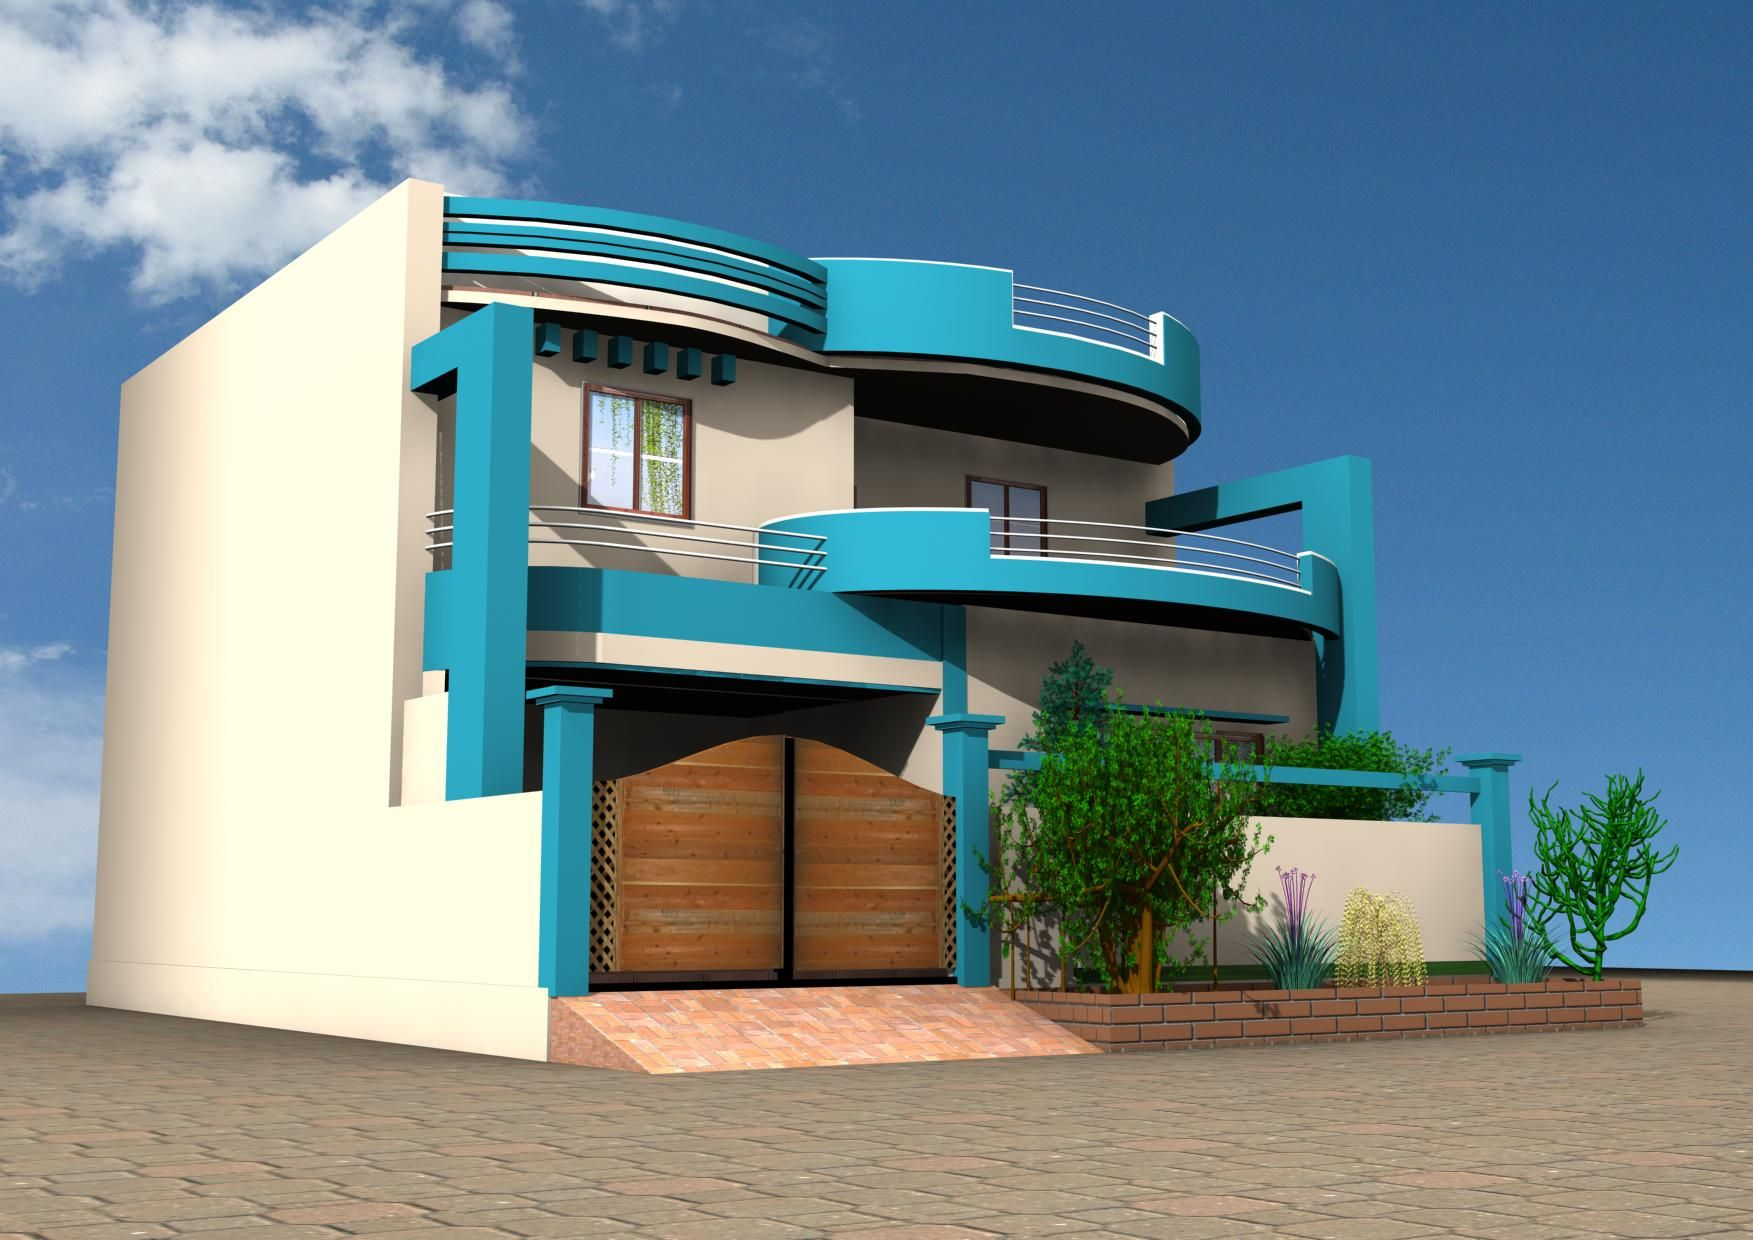 3d home design images hd 1080p for Free exterior design